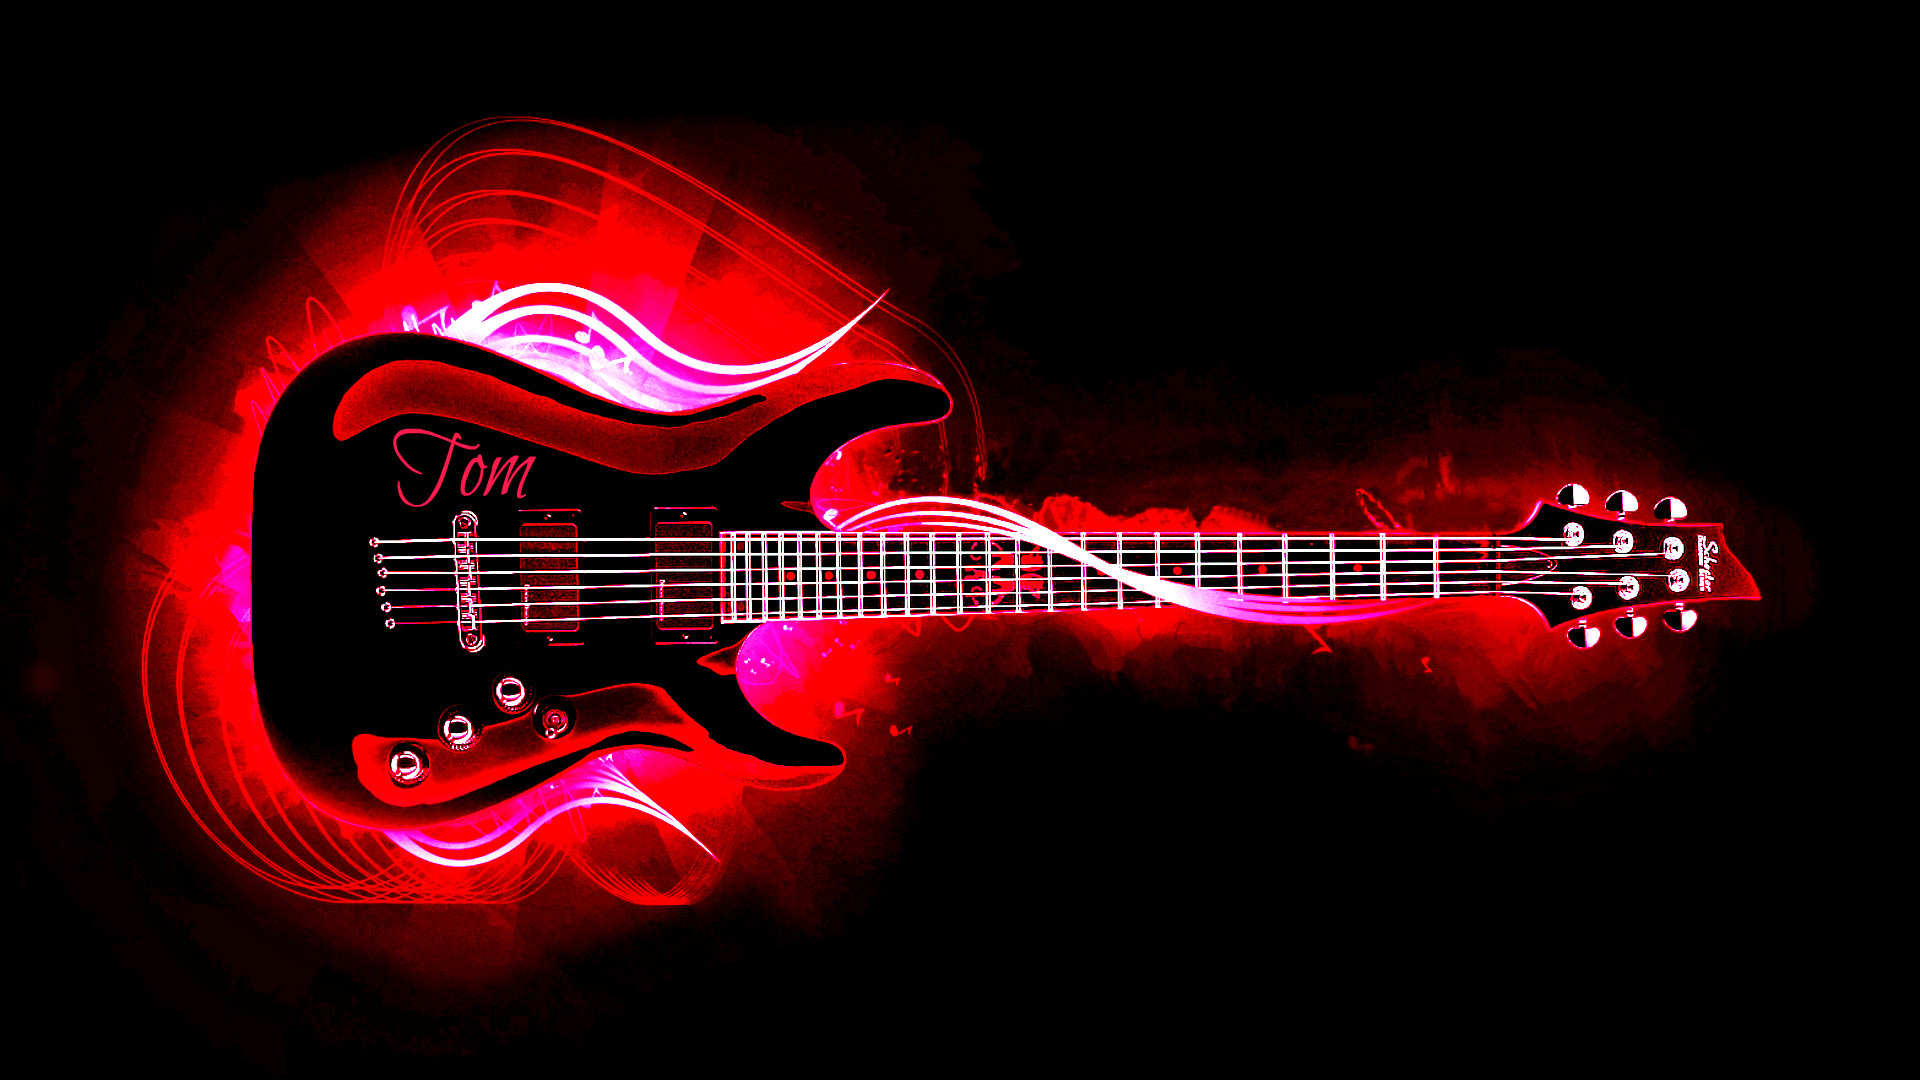 1920x1080 Guitar Images: Find best latest Guitar Images in HD for your PC desktop  background & mobile phones.